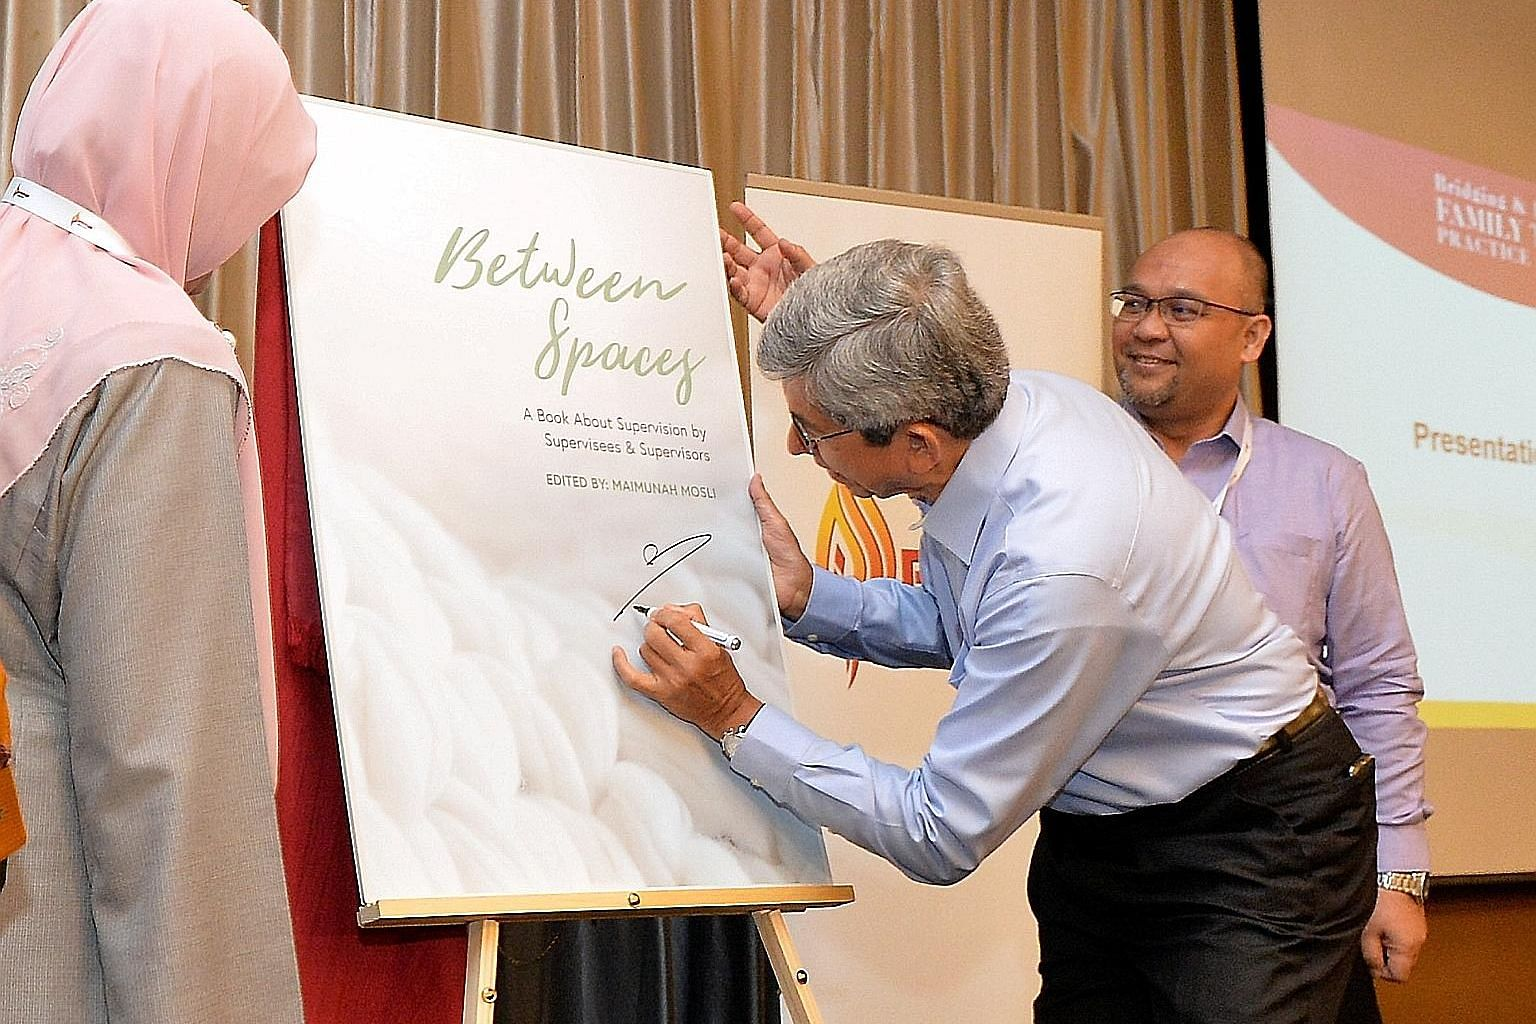 Minister-in-charge of Muslim Affairs Yaacob Ibrahim launching the book Between Spaces at the symposium yesterday, with PPIS chief executive Mohd Ali Mahmood.